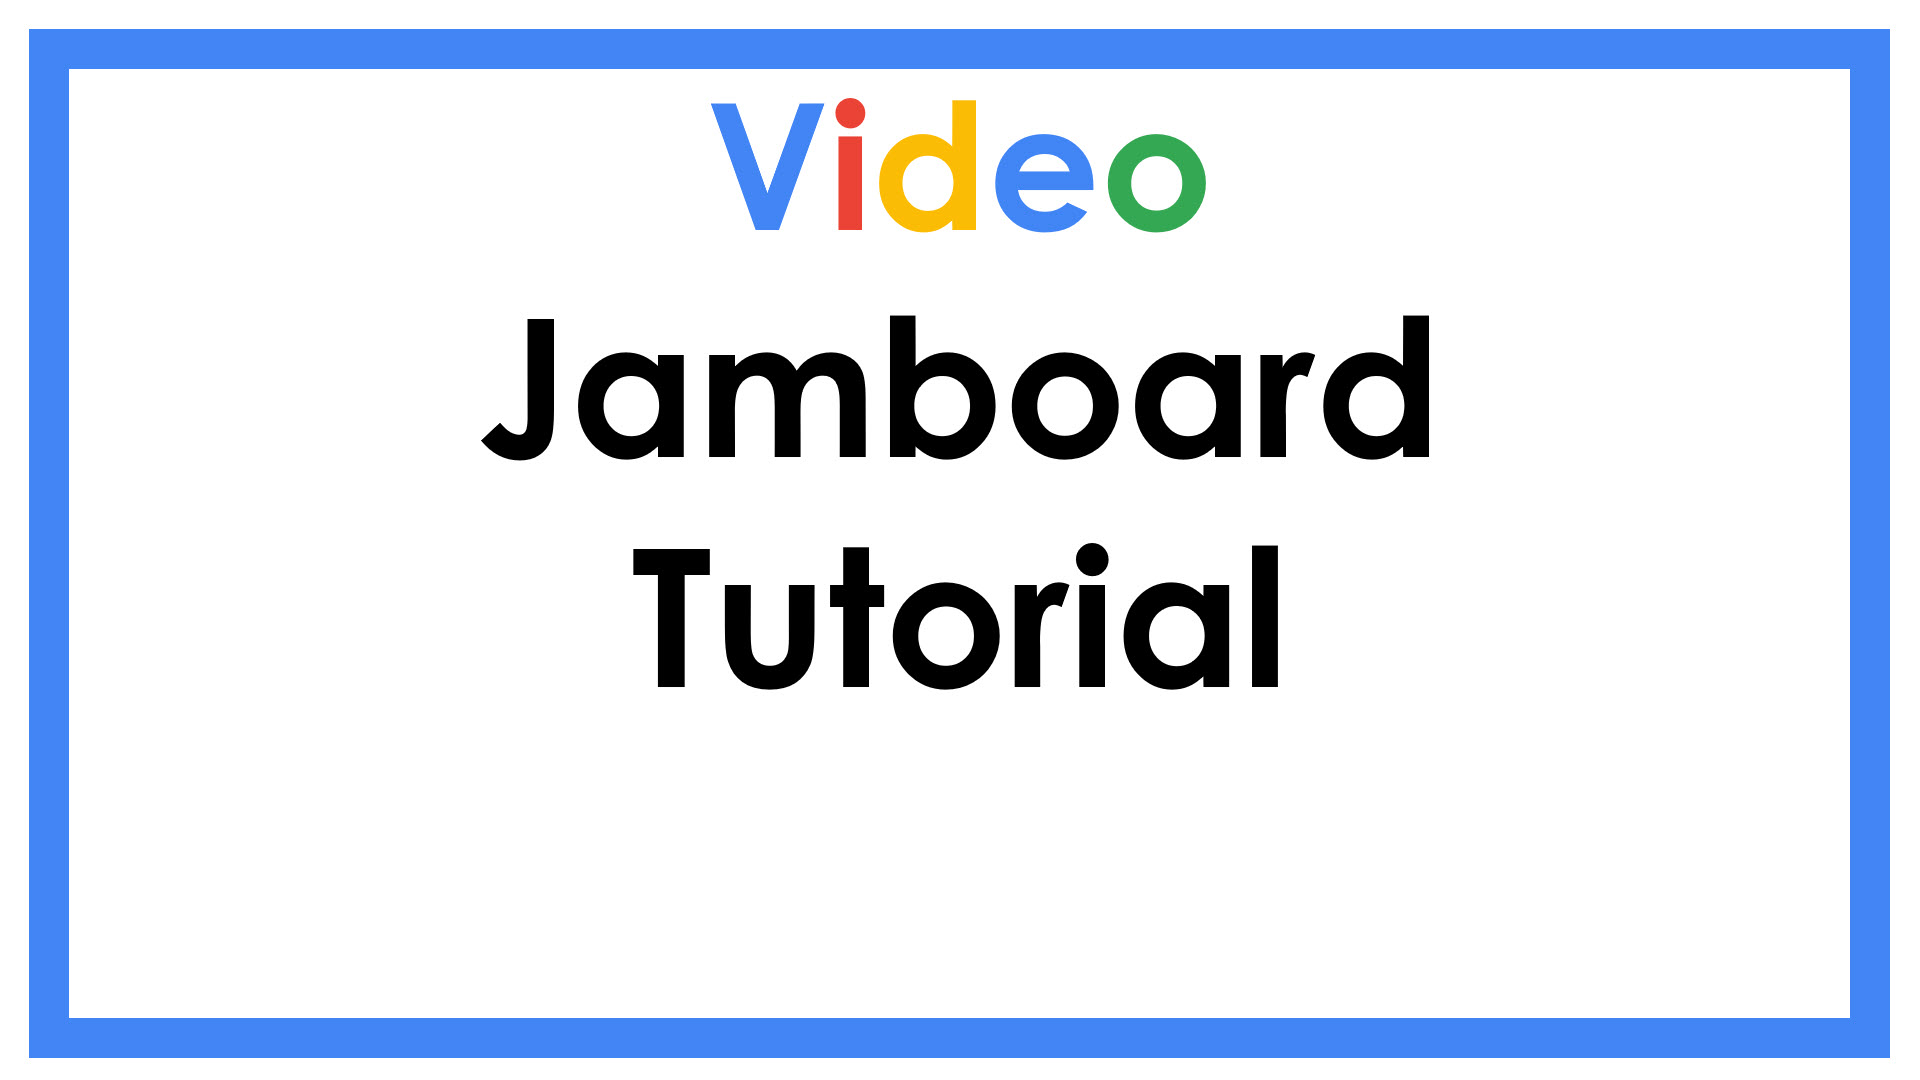 Jamboard Tutorial